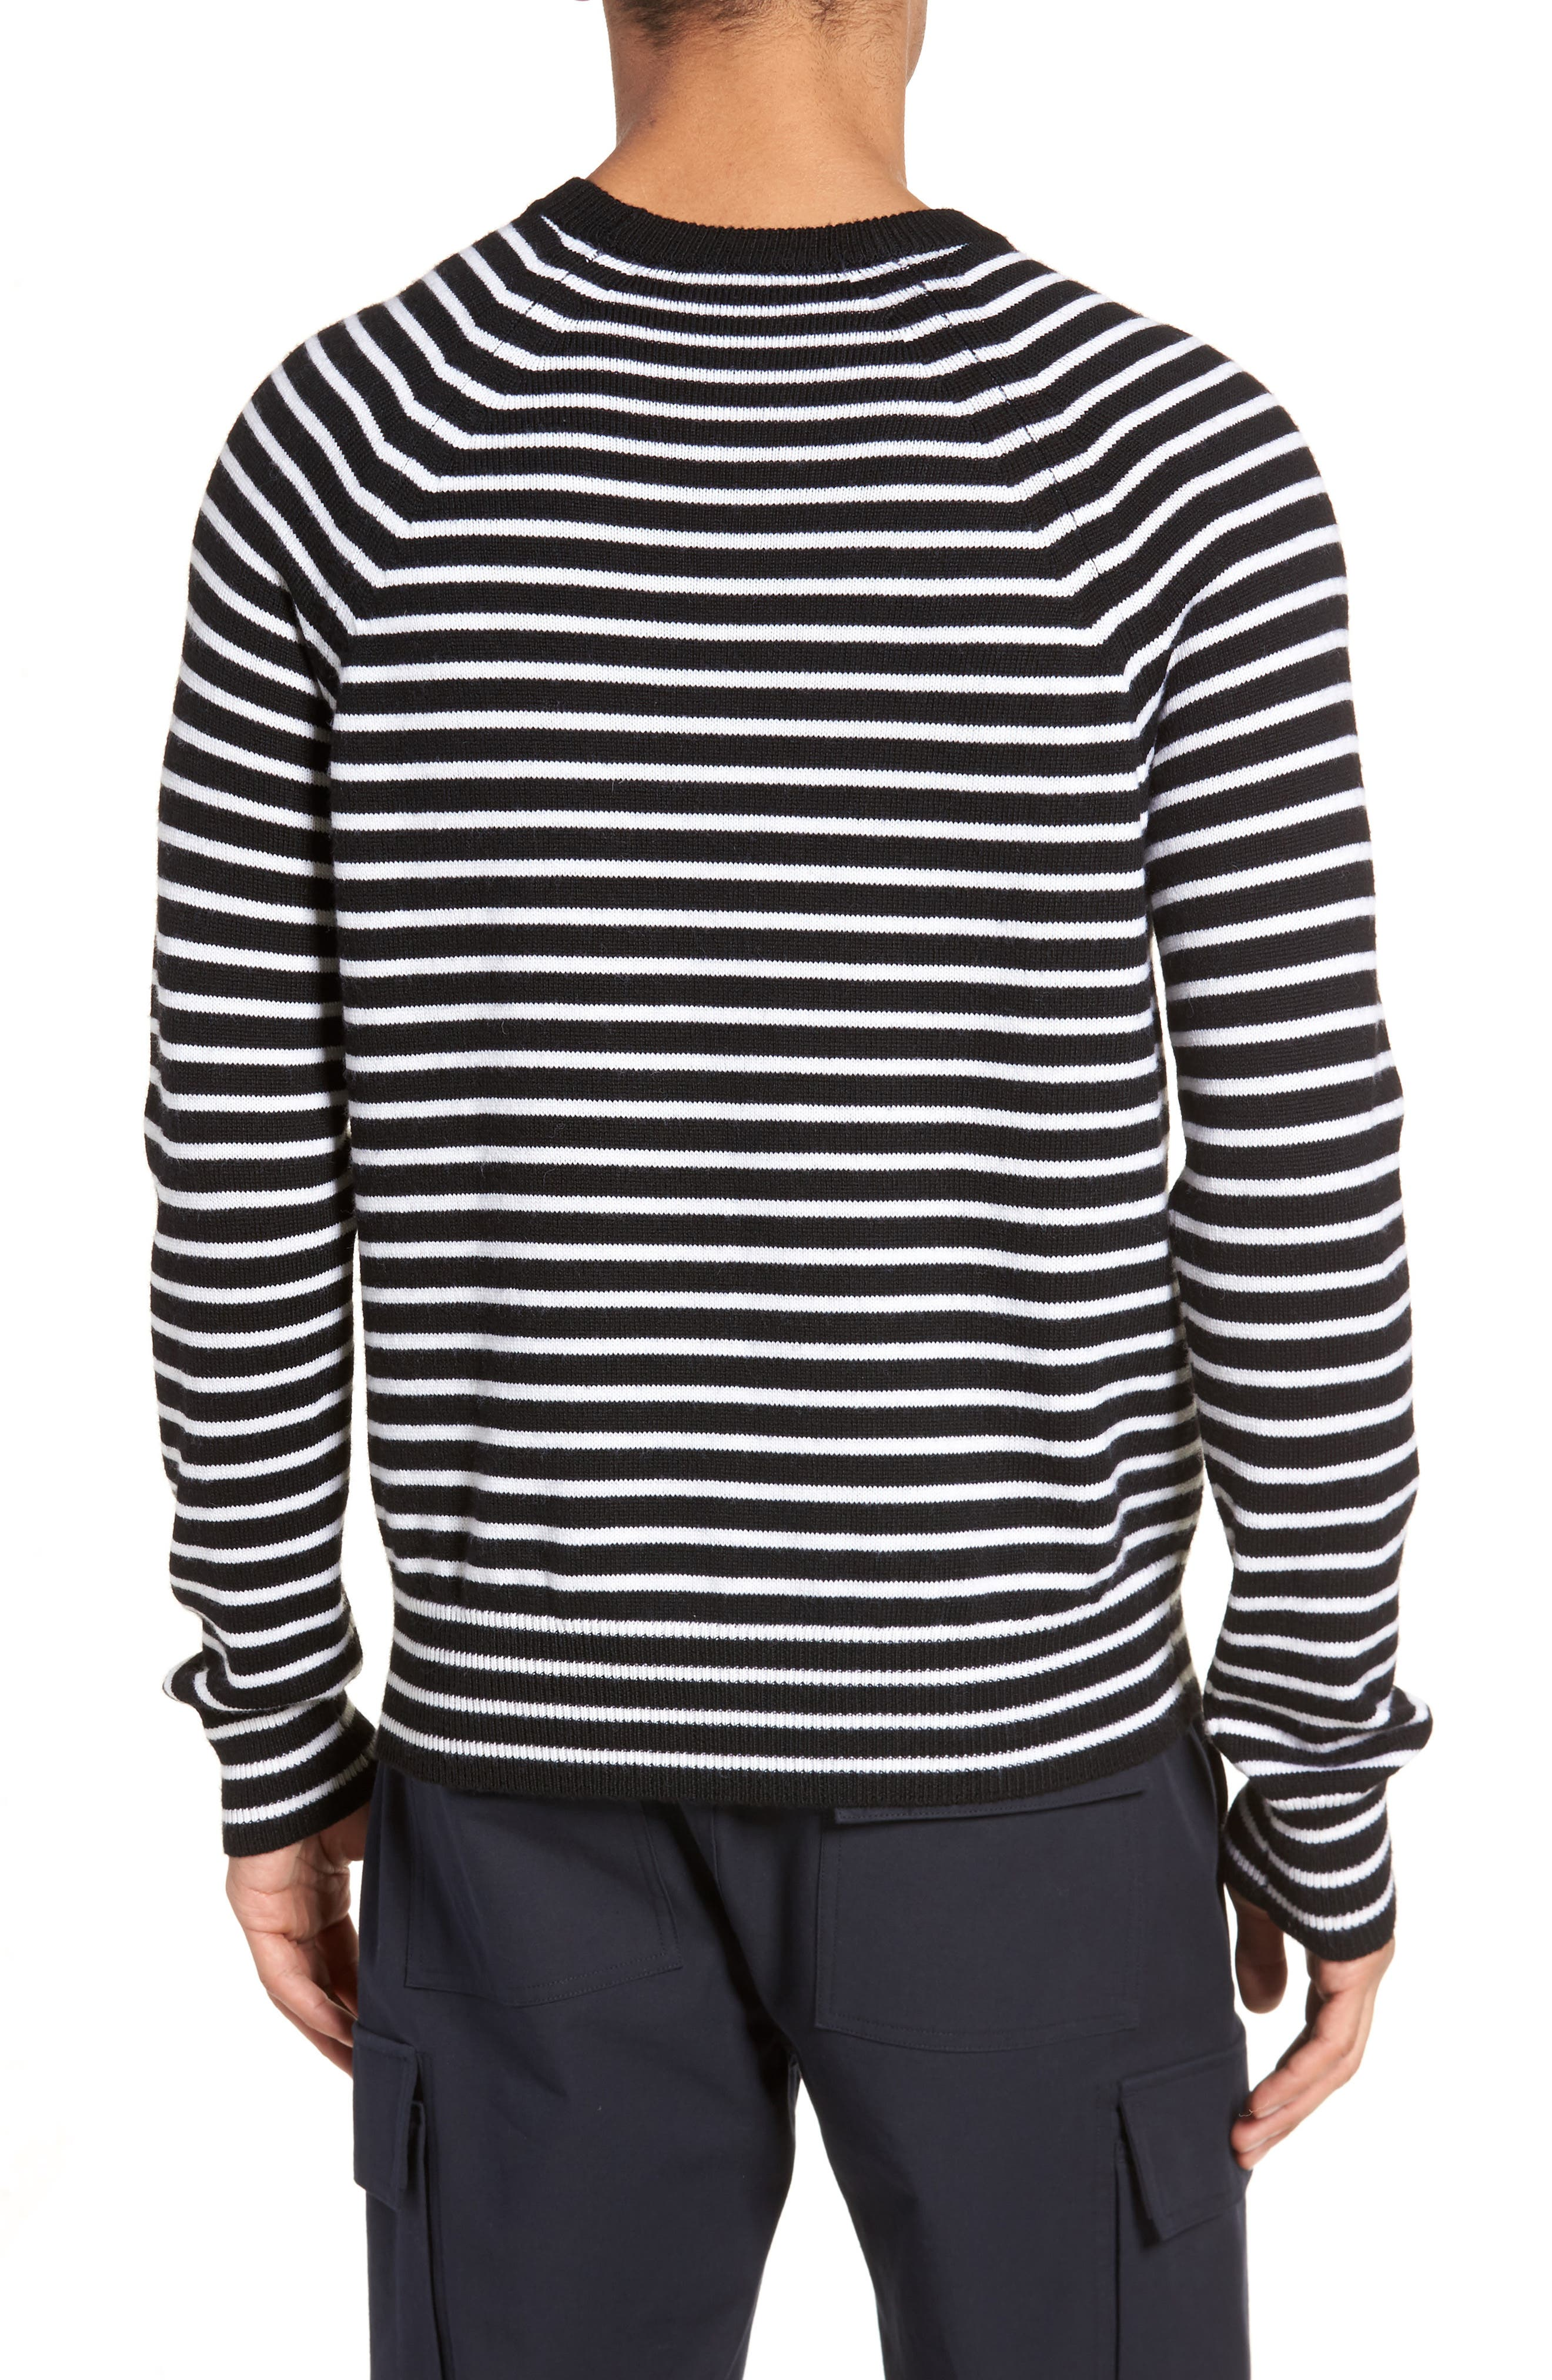 Regular Fit Striped Wool Sweater,                             Alternate thumbnail 2, color,                             001